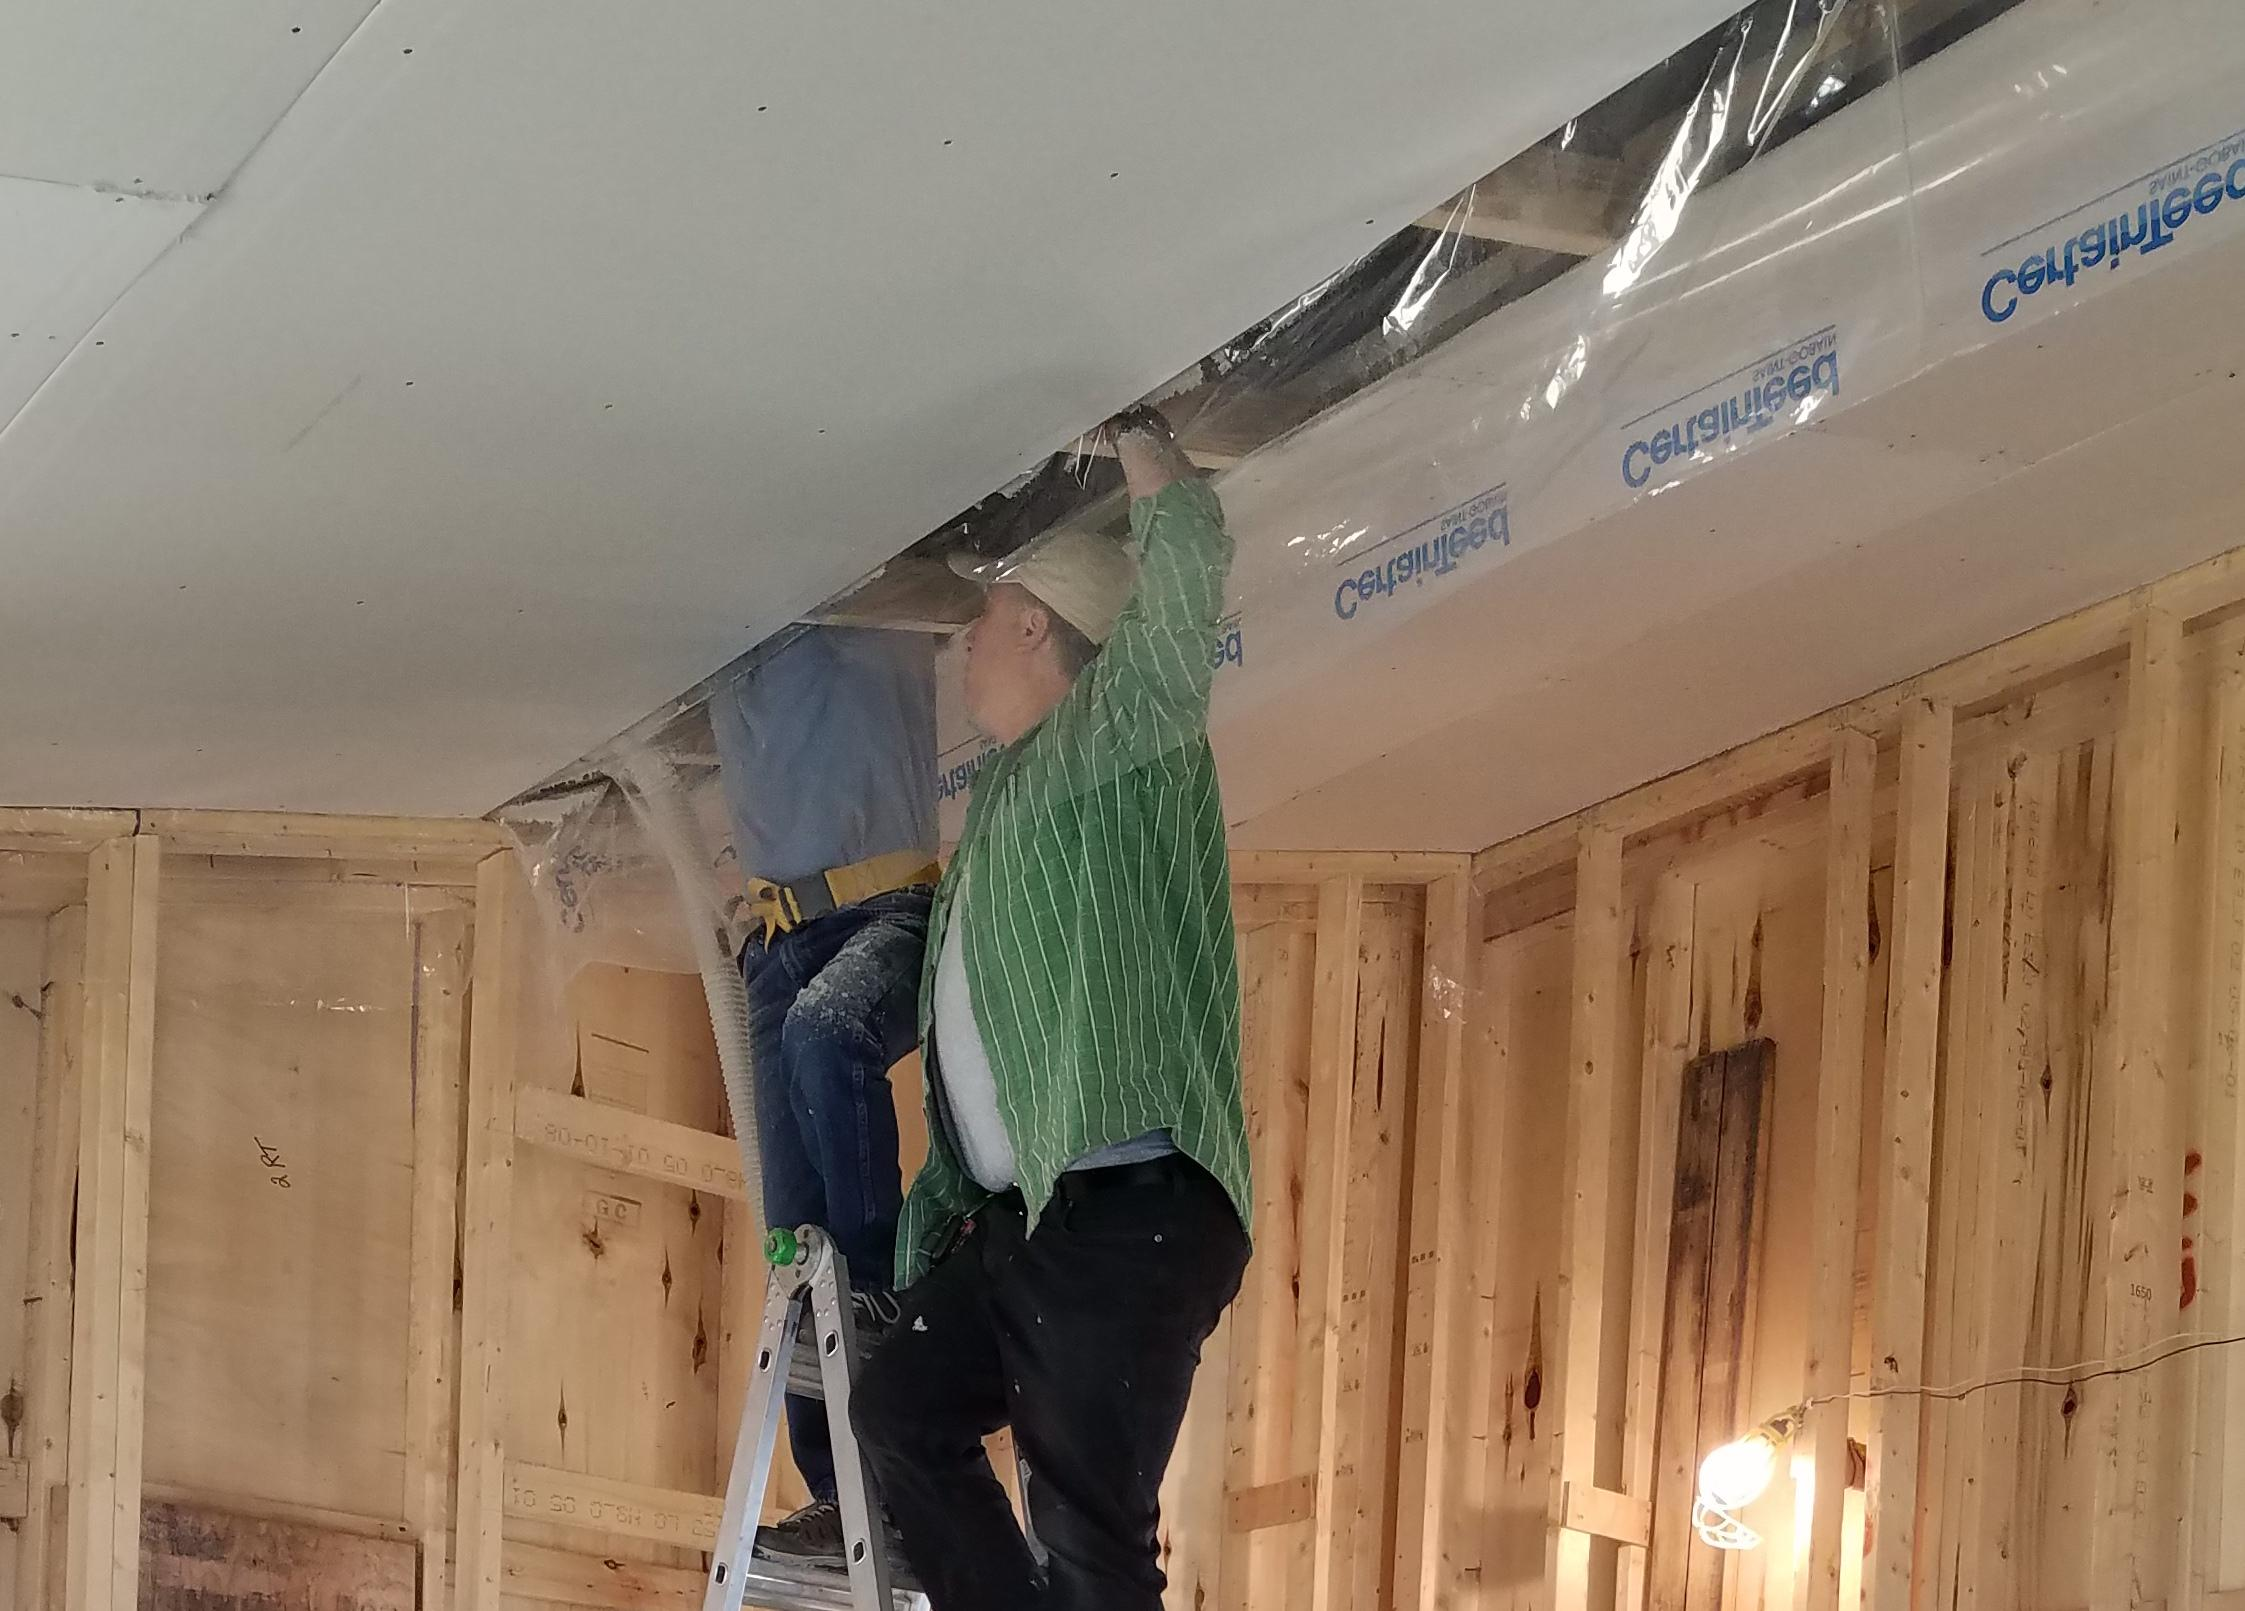 Accurate-Airtight Exteriors' President, Torrance Kramer, working from a ladder to install cellulose insulation